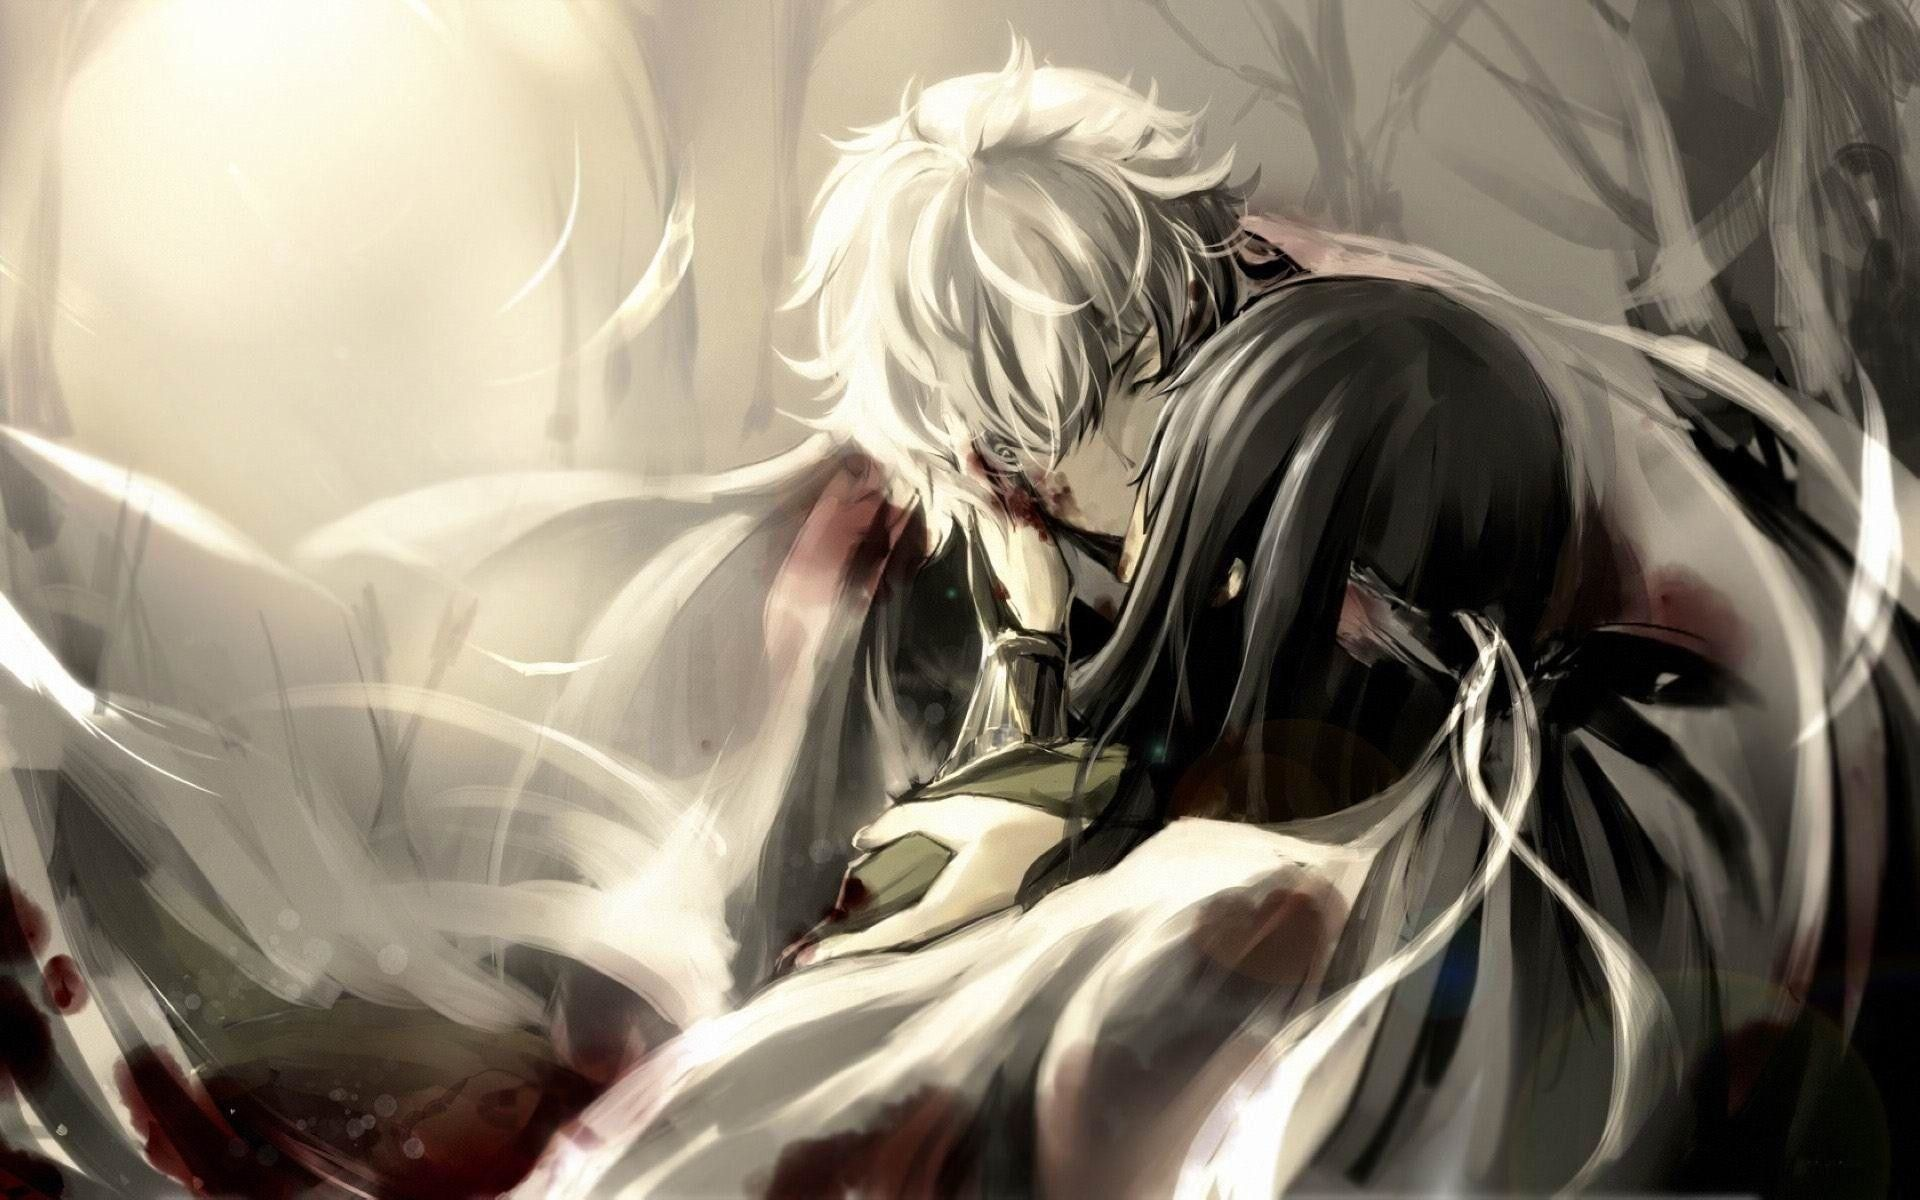 Romantic Horror Anime Wallpapers Top Free Romantic Horror Anime Backgrounds Wallpaperaccess